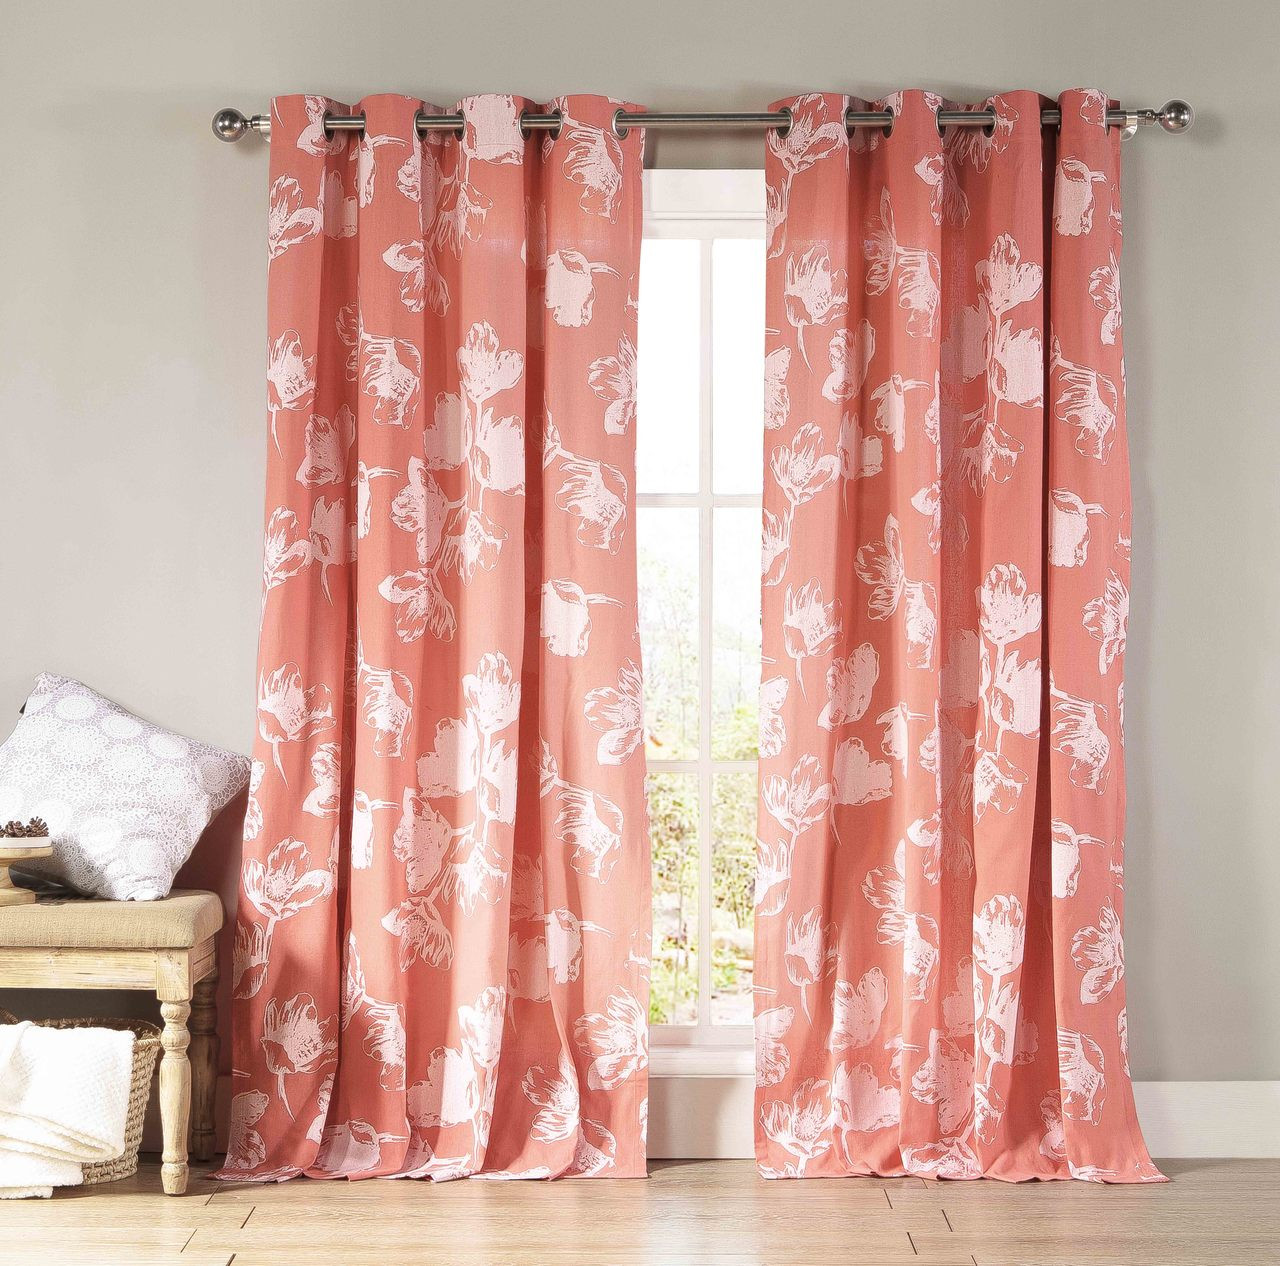 Cotton Curtain Panels Two Cotton Rich Grommet Window Curtain Panels Coral And White Floral Design 84 Long